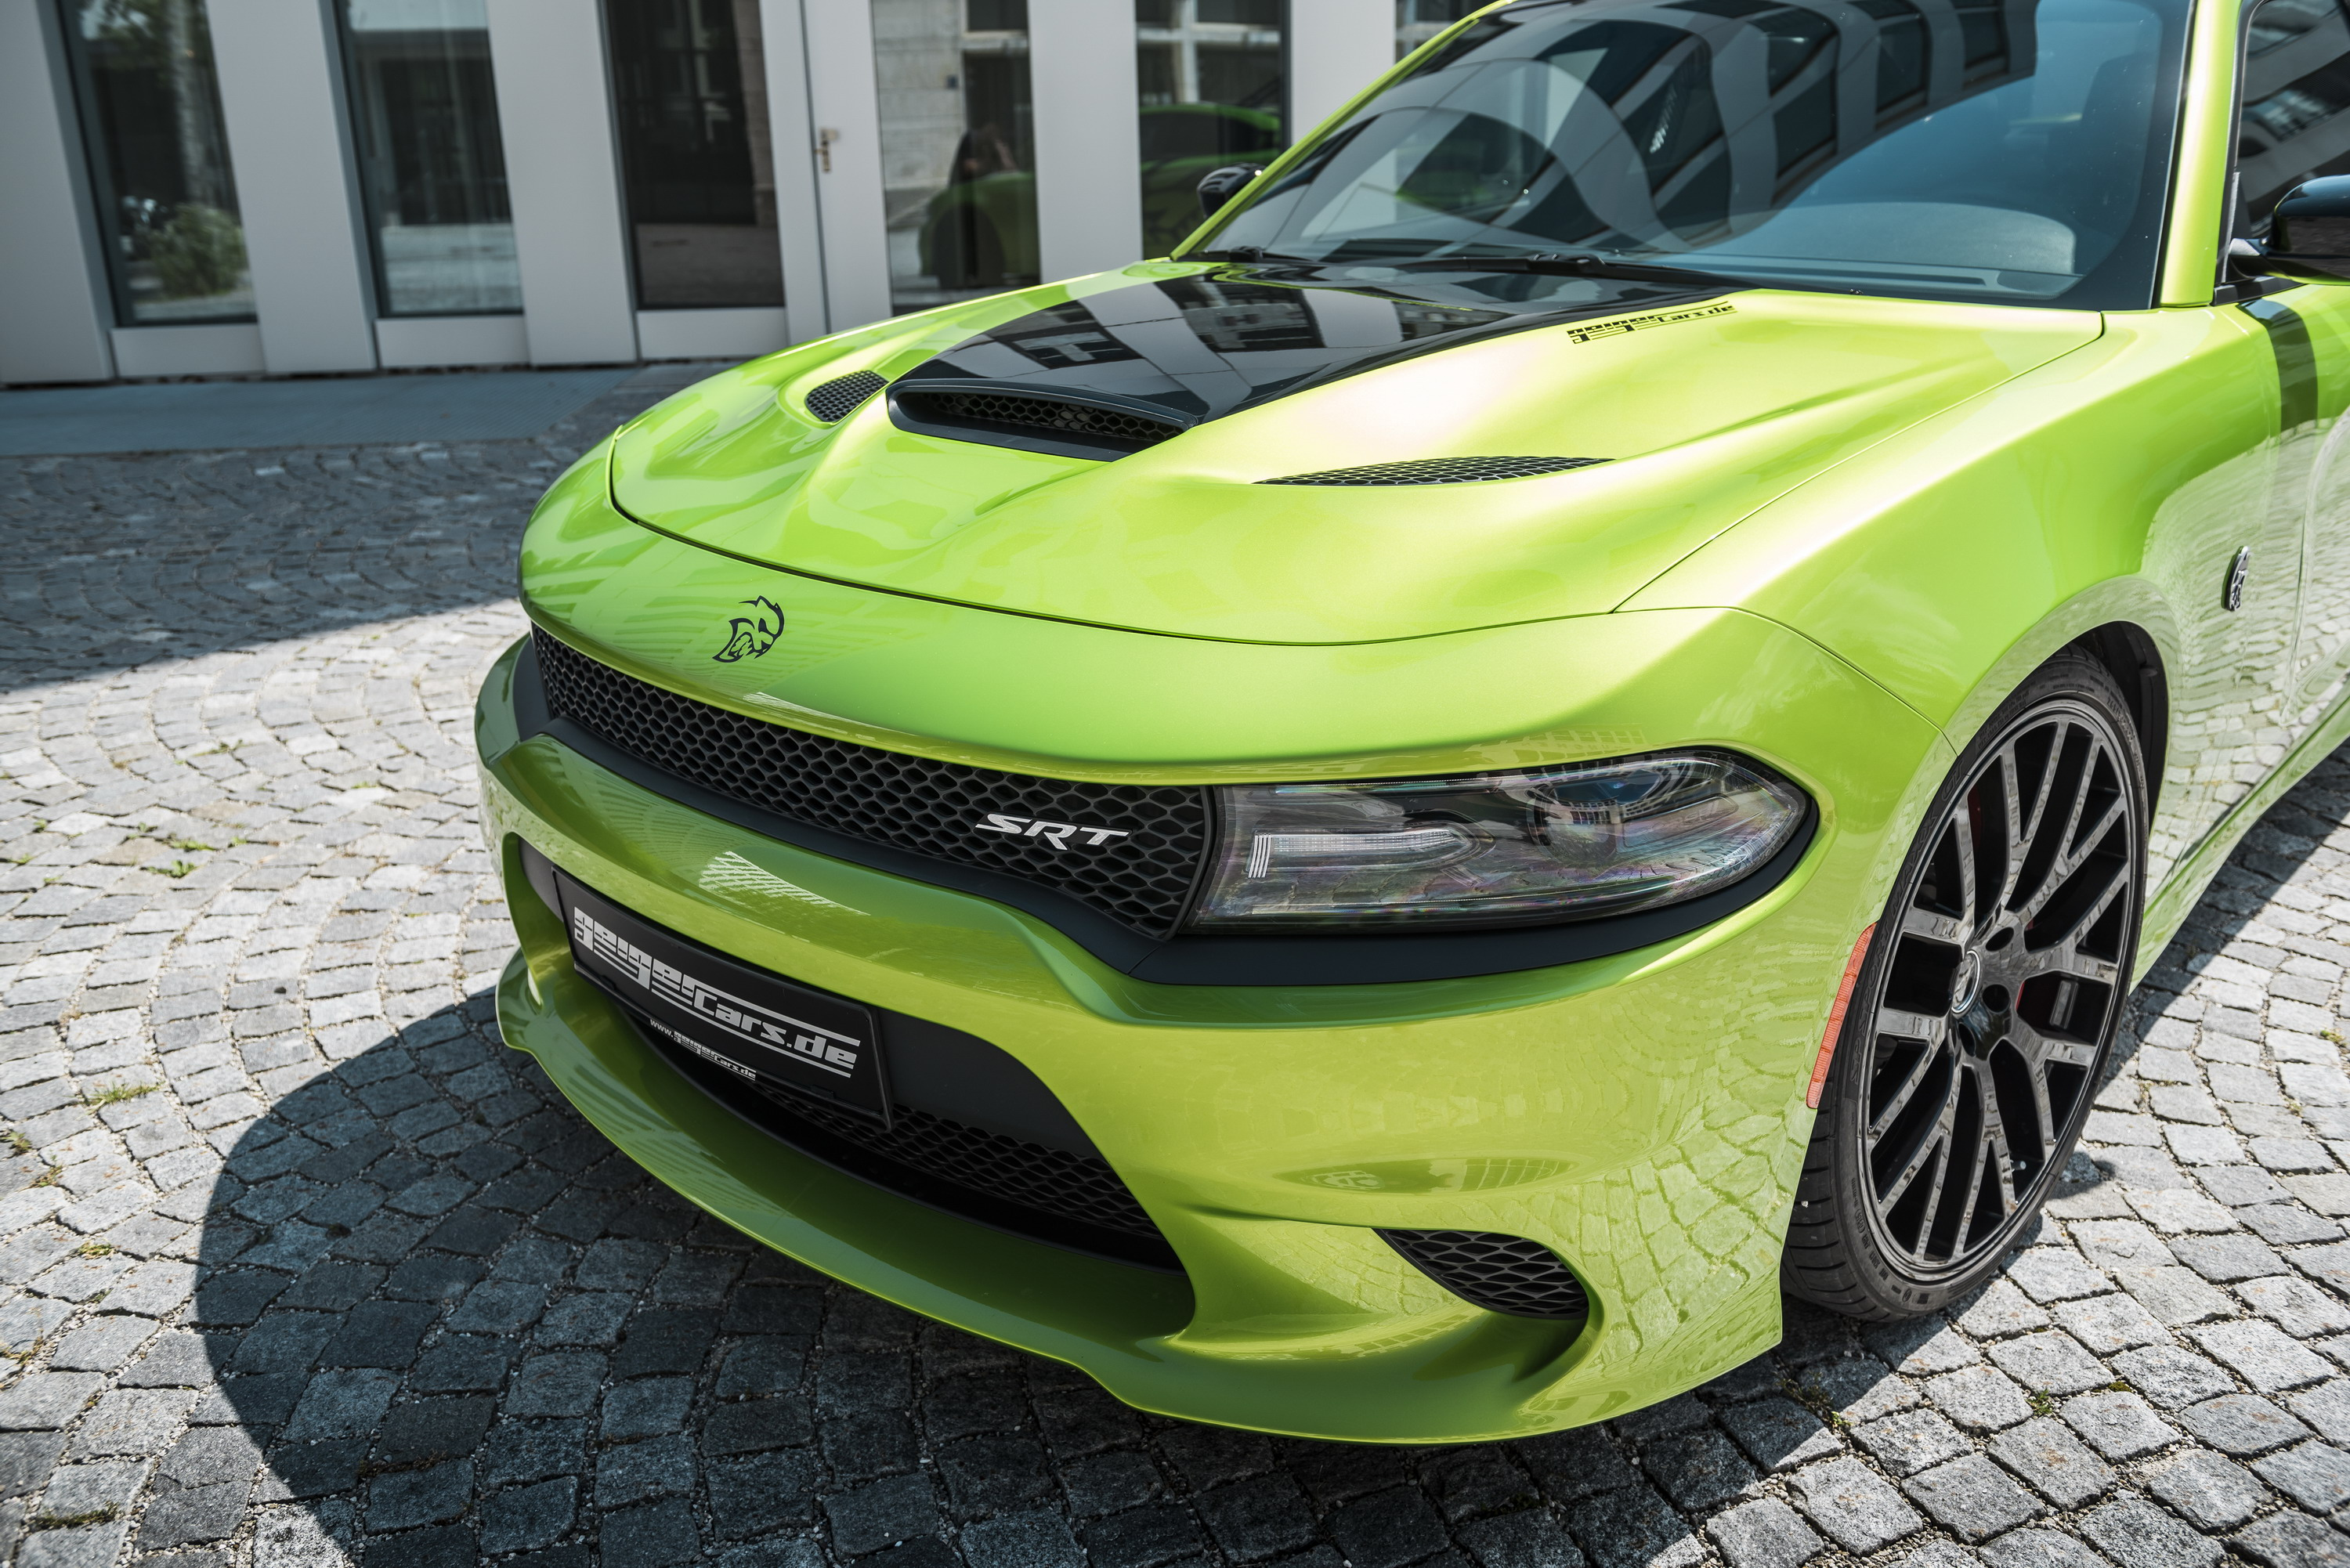 2016 dodge charger srt hellcat by geiger cars gallery 689100 top speed. Black Bedroom Furniture Sets. Home Design Ideas